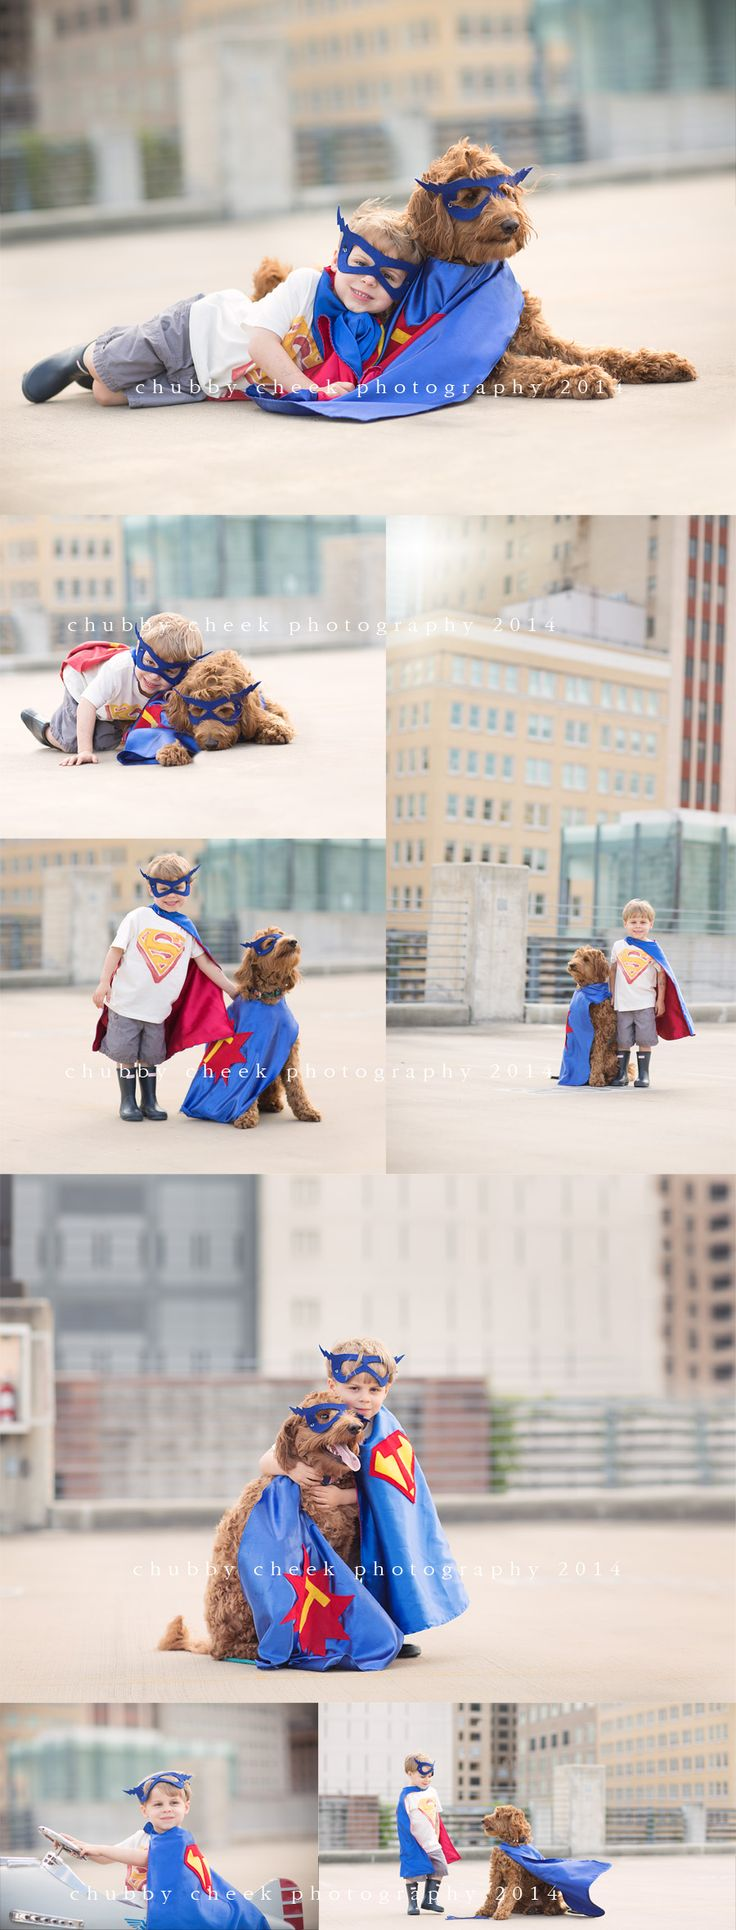 a superhero and his sidekick….riveroaks houston tx child photographer